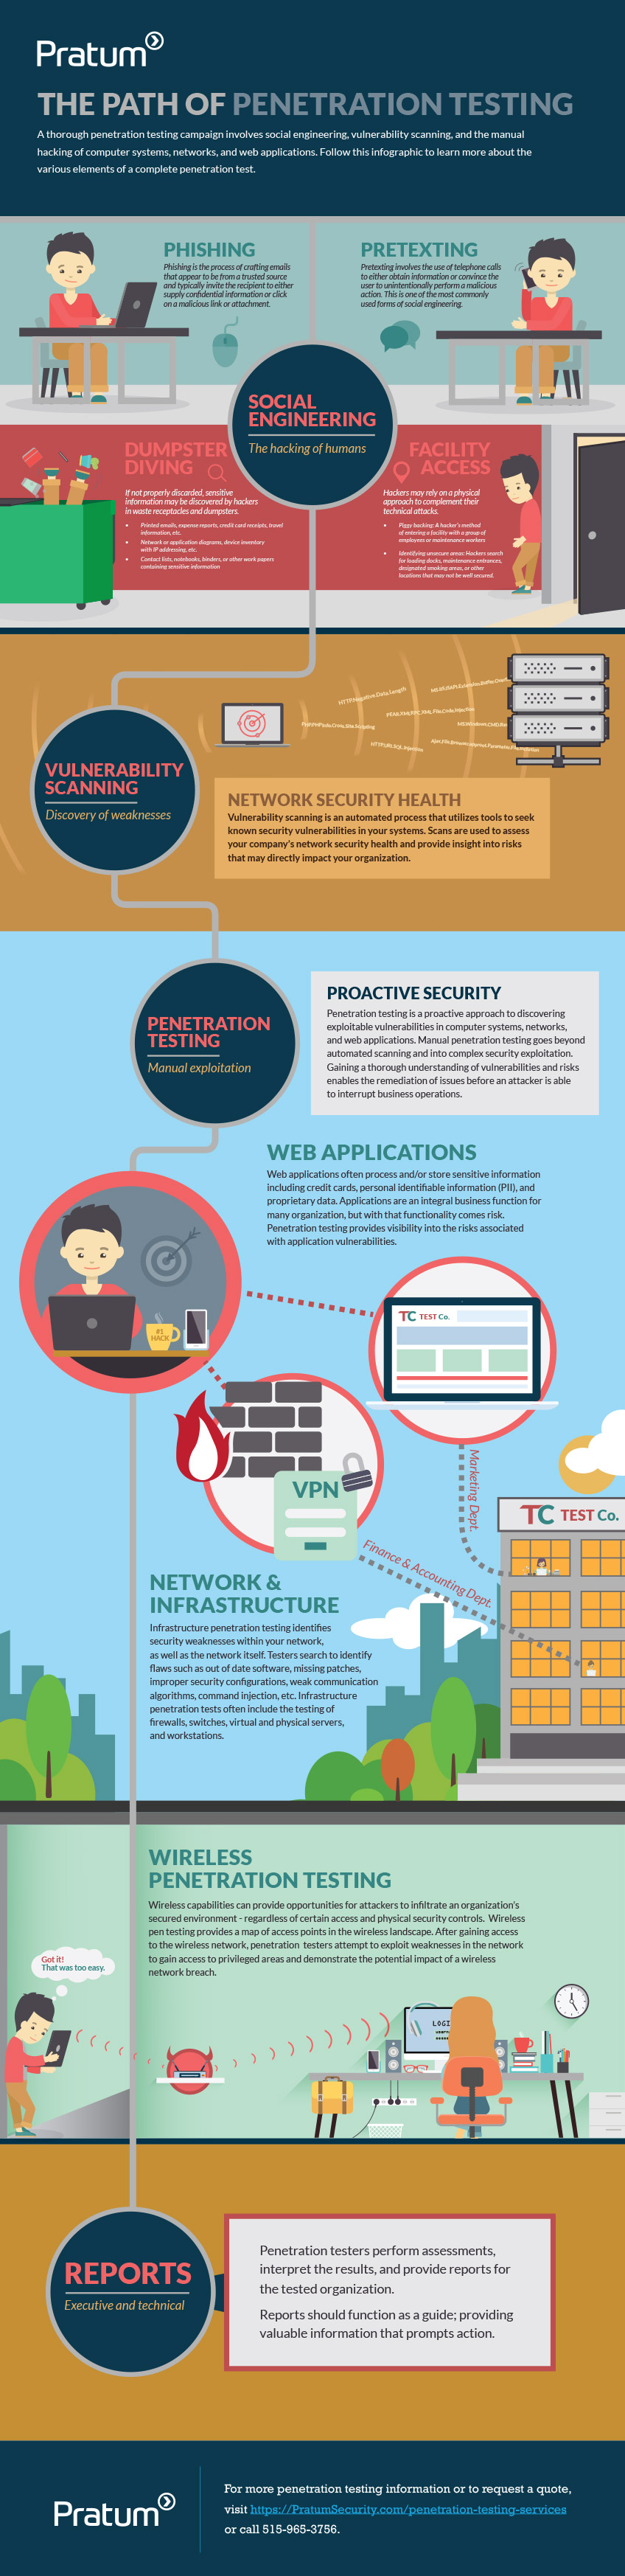 Follow the path of a penetration test with this insightful infographic.